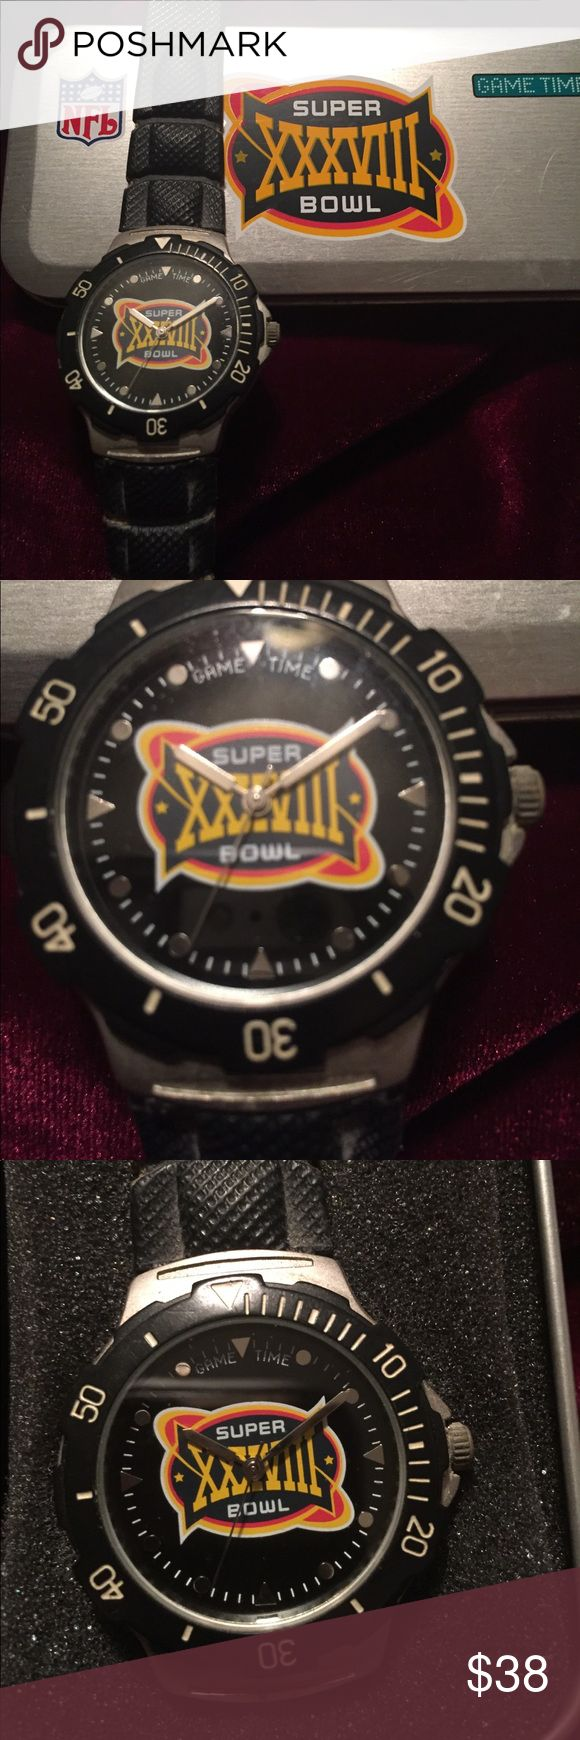 Super Bowl Watch and Case Super Bowl Watch with Case from the XXXVIII Game.   This needs a new battery and probably a Band. This band is stiff and could easily be cleaned up to wear.                  All sales are final. NFL Accessories Watches